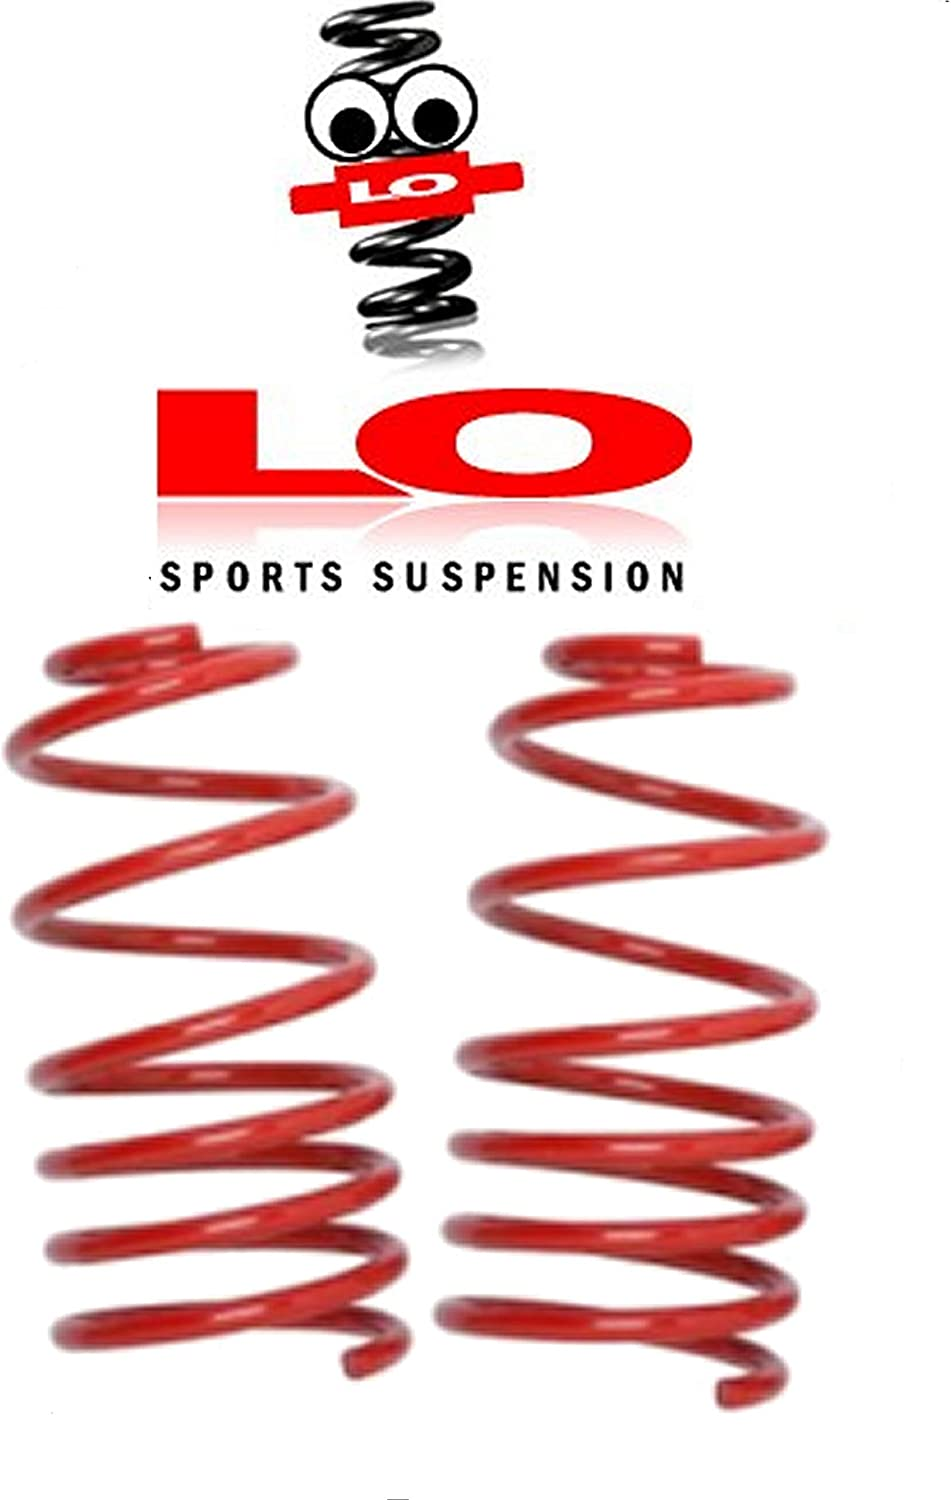 Lo Suspension Lowering Springs 10244 fronts 40mm A4 AVANT 2WD B8 08-15 1.8 TFSi 2.0 TFSi /& 2.0 TDi NOT S-LINE MODELS